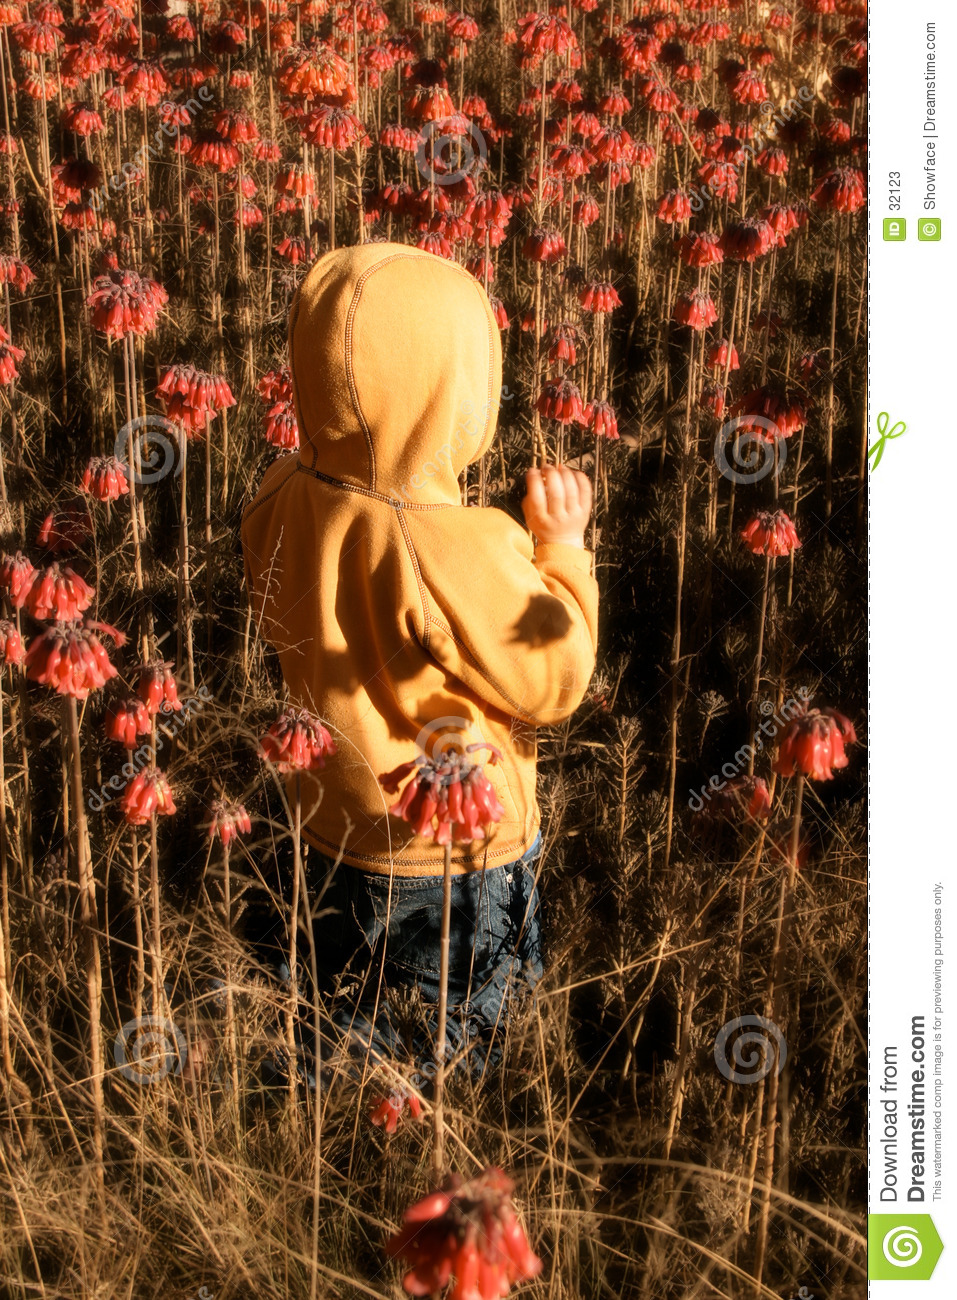 Child in wildflowers